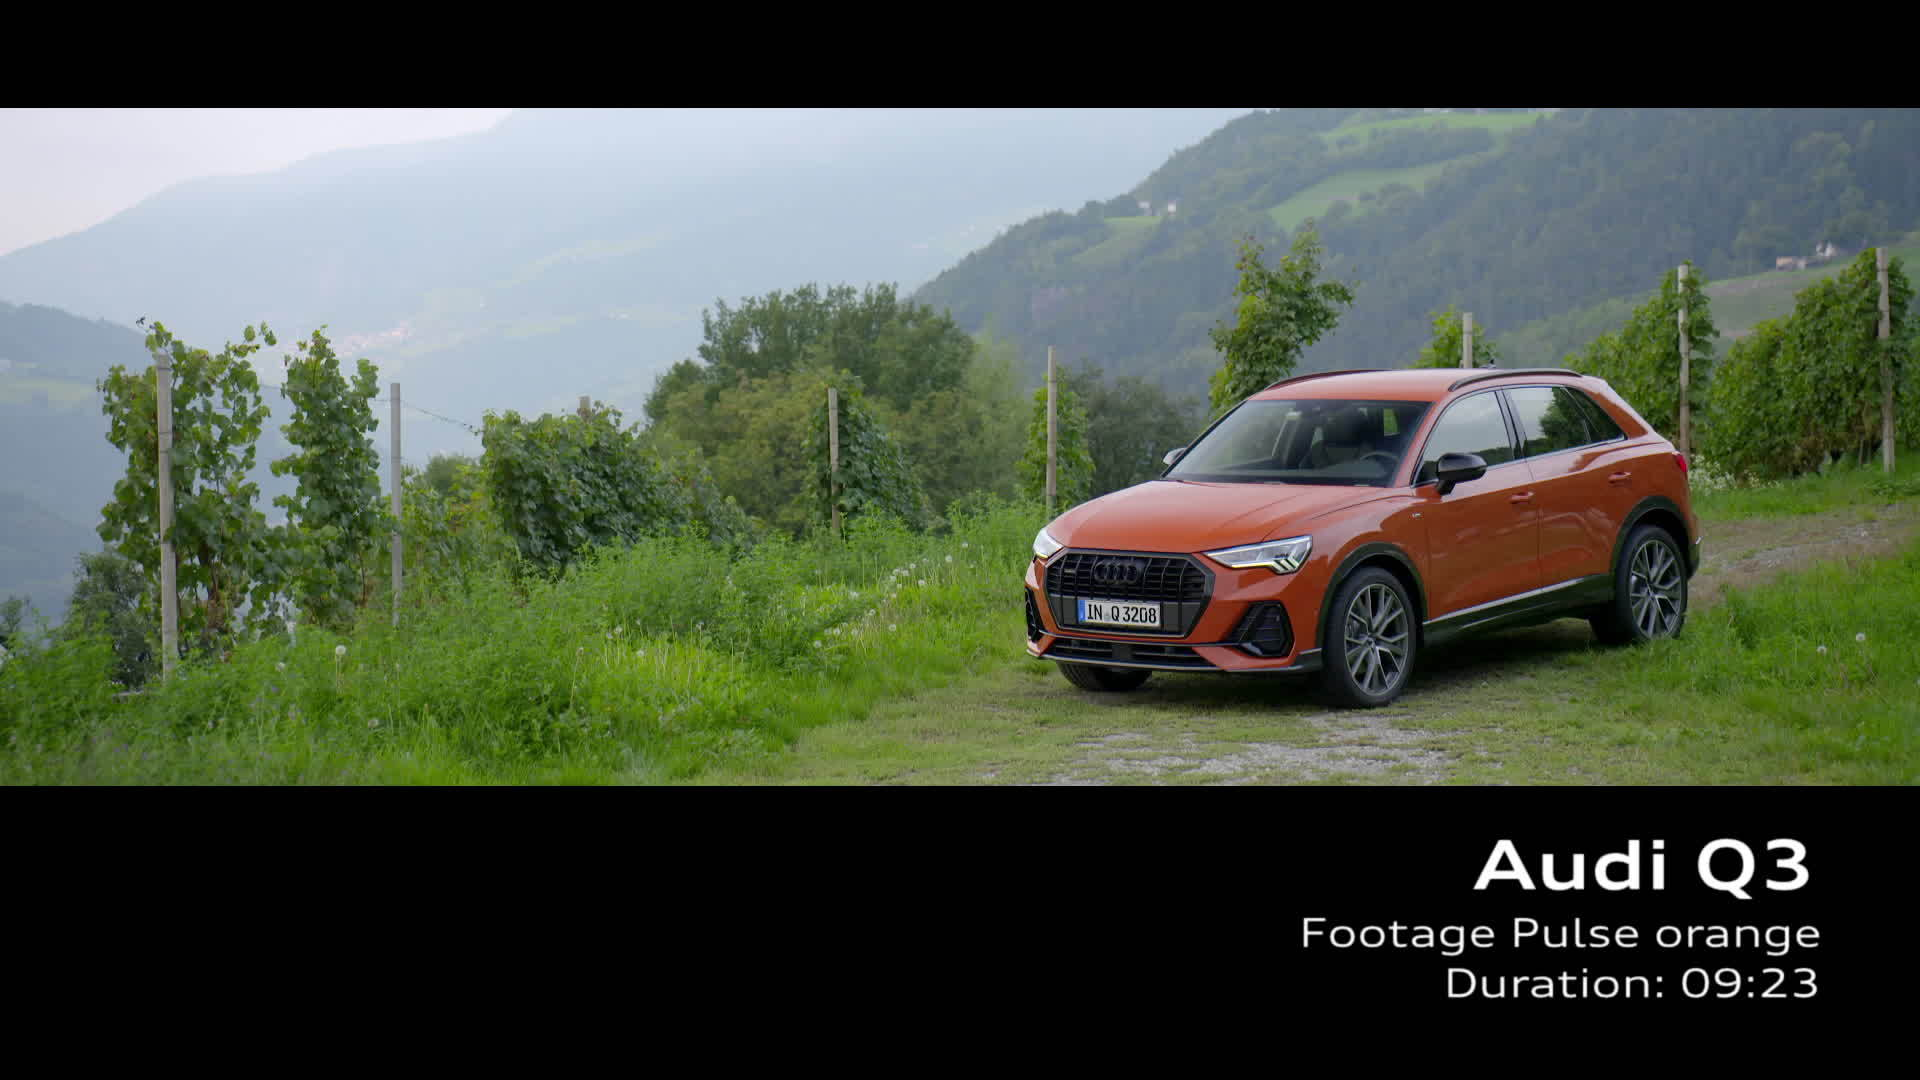 Audi Q3 Footage Pulse orange (2018)